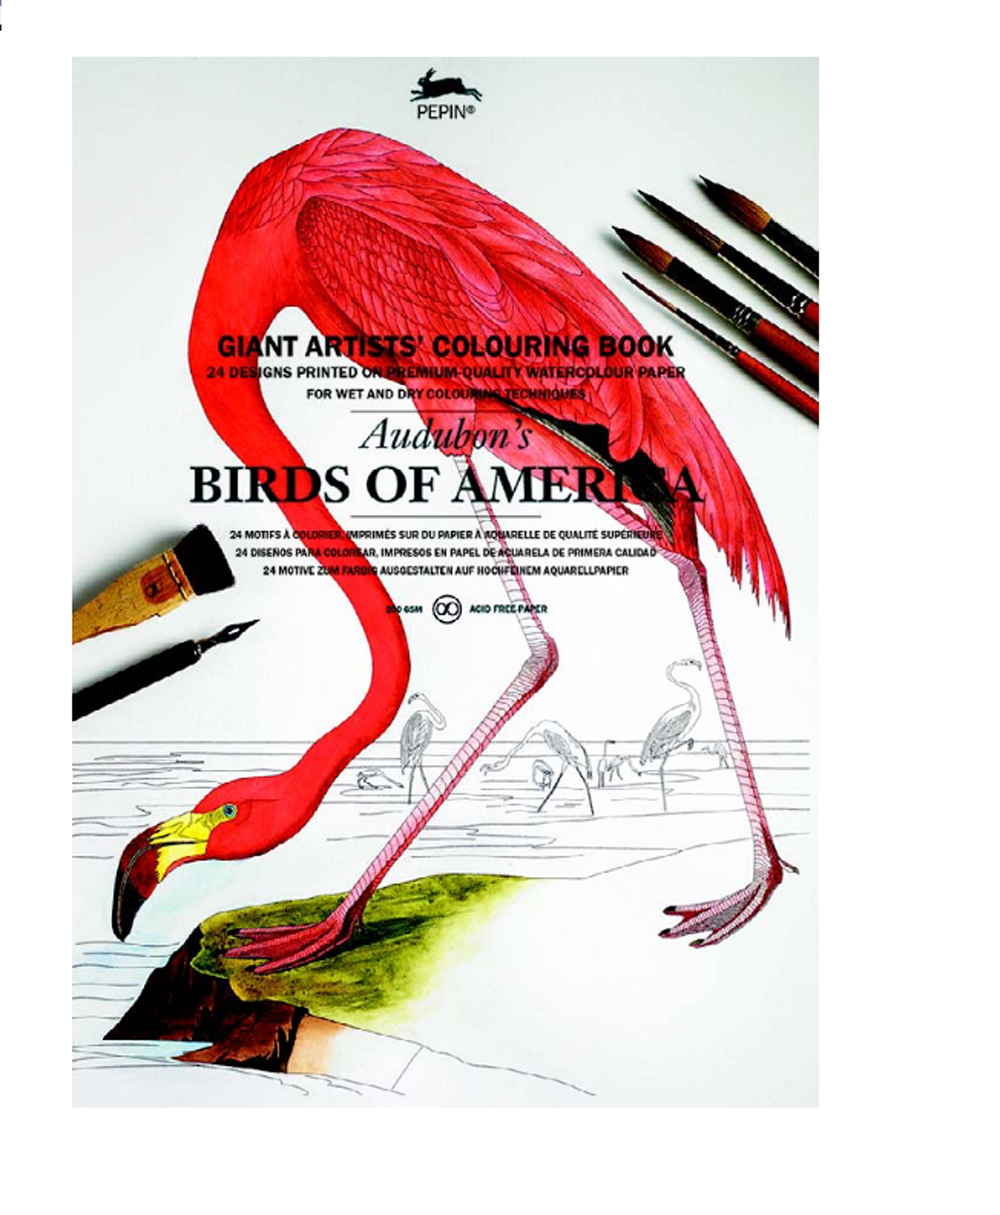 Giant Artists' Colouring Bk Birds Of America